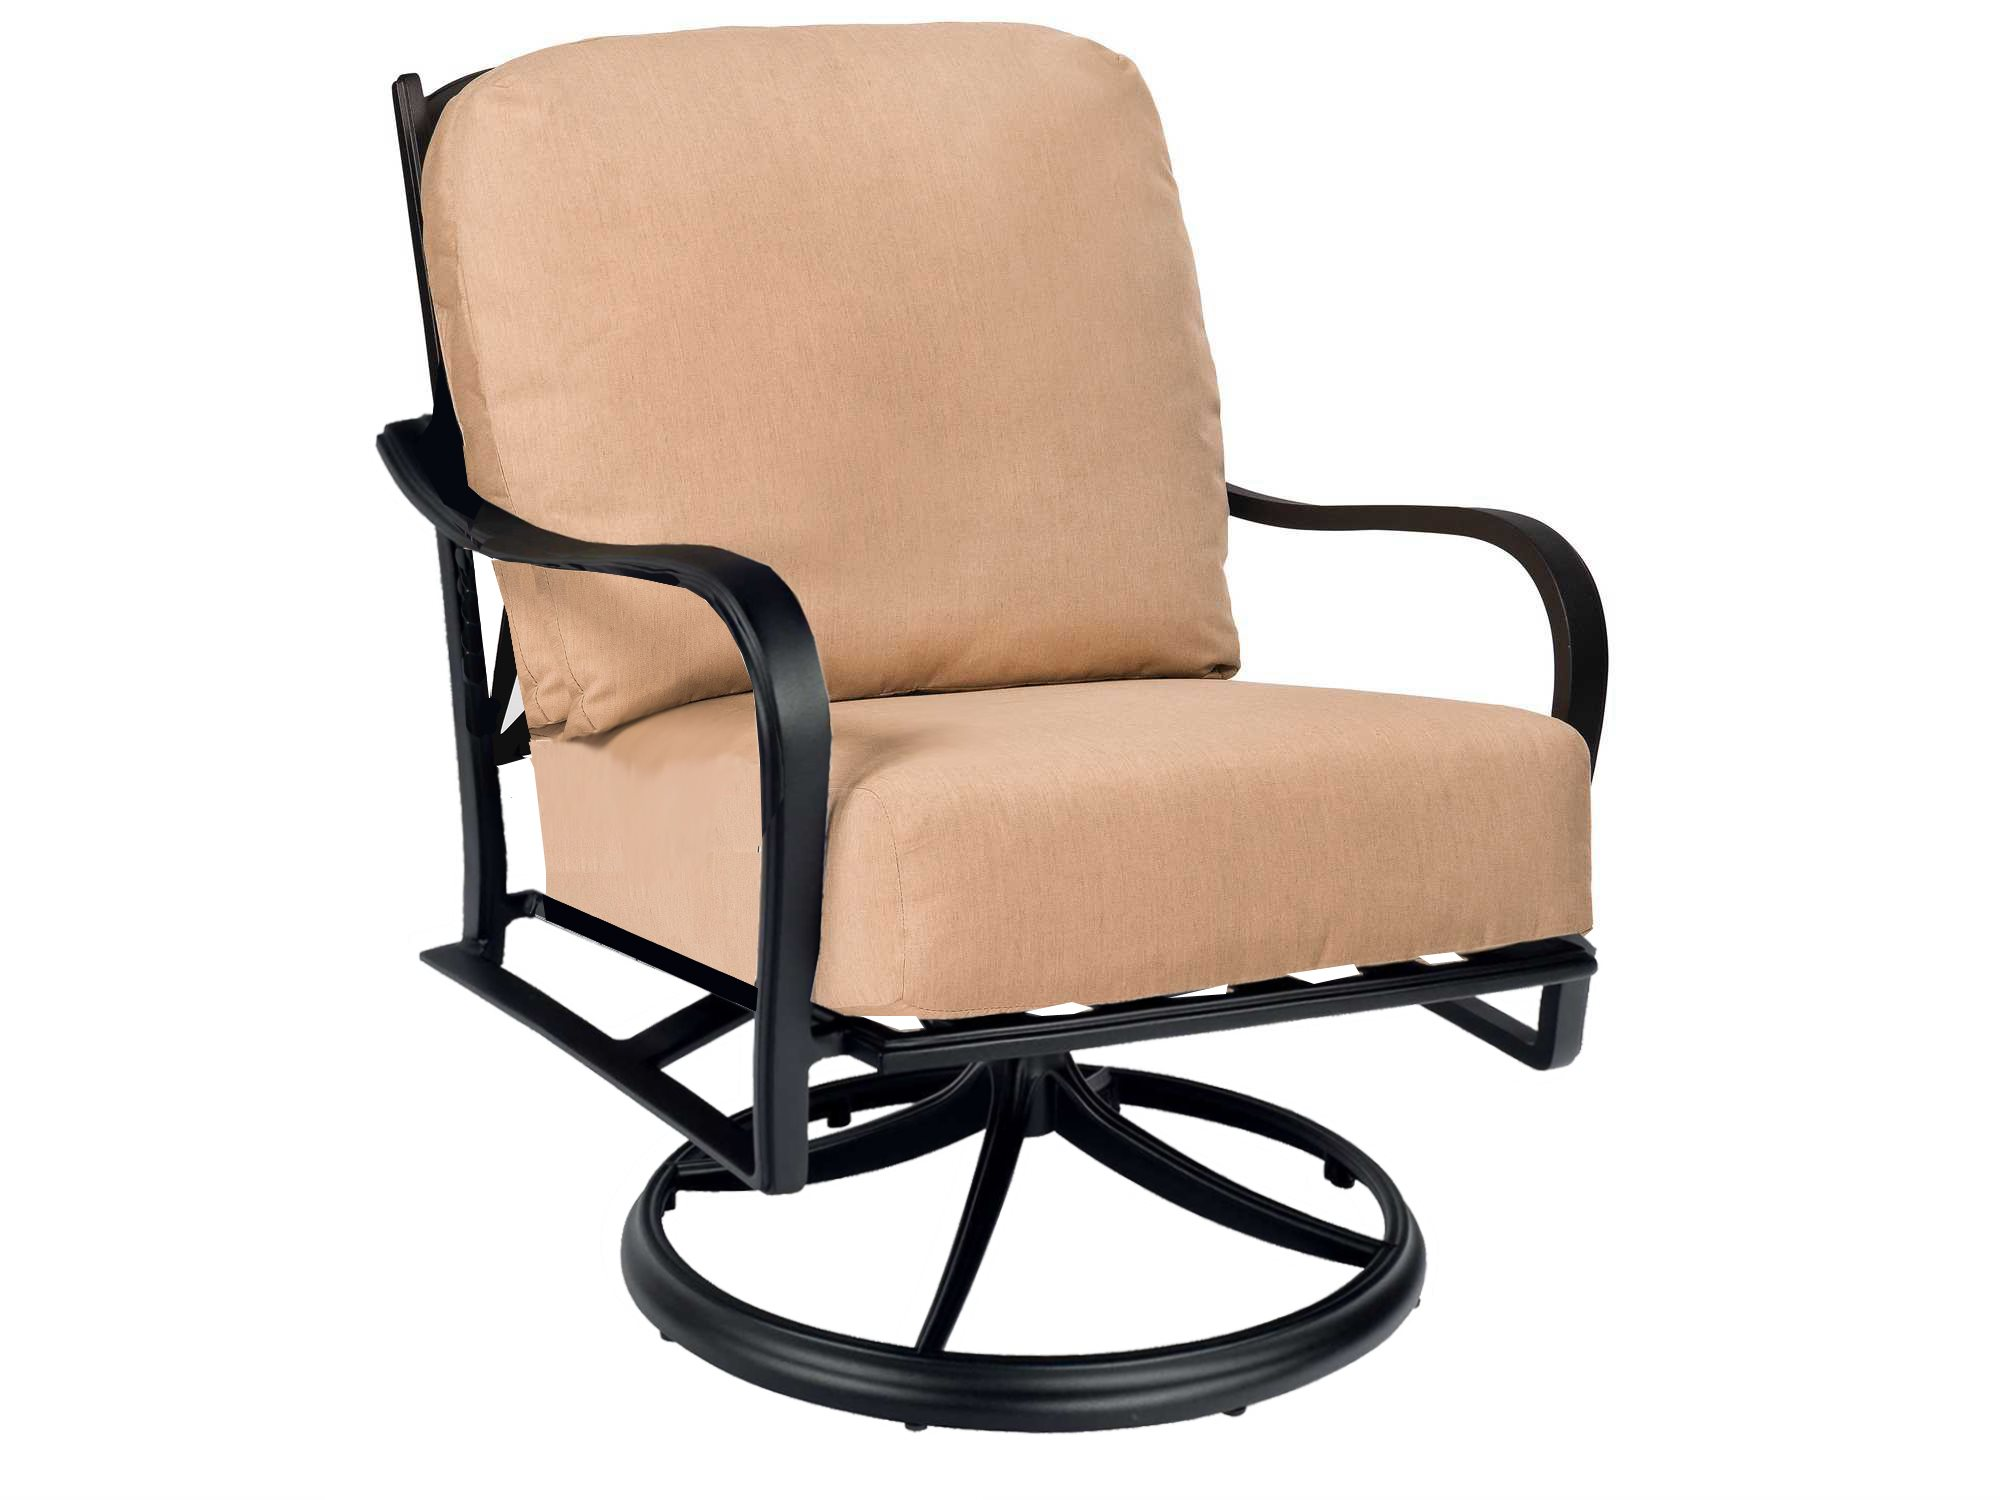 Rocking Chair Replacement Cushions Woodard Apollo Swivel Rocker Lounge Chair Replacement Cushions